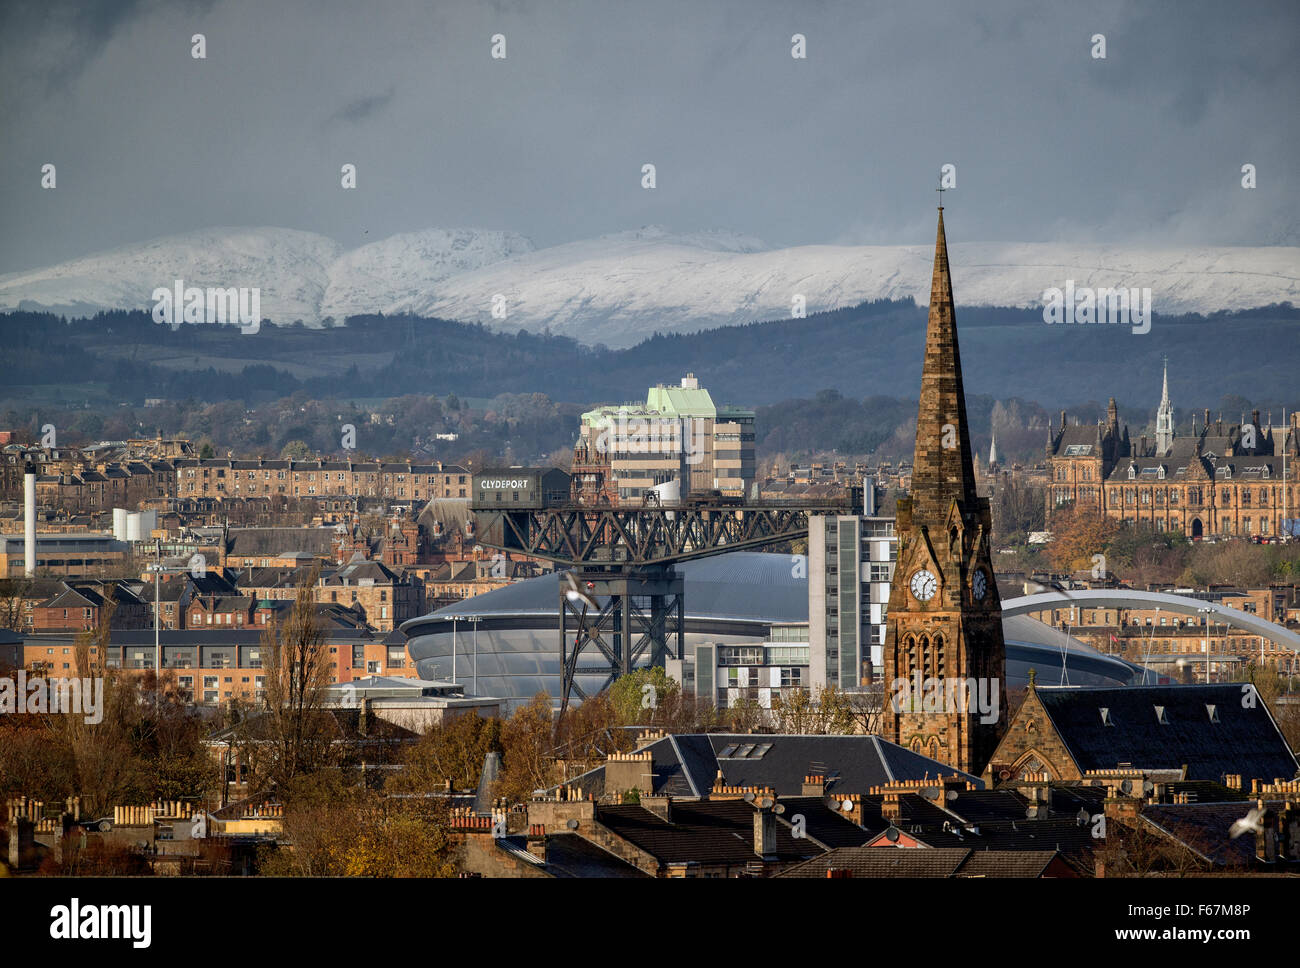 Marvellous Kate Snow Stock Photos  Kate Snow Stock Images  Alamy With Engaging Glasgow Scotland Uk Th November  Snow Covers The Hills Above With Archaic In The Night Garden Makka Pakka Song Also Uk Garden Designers In Addition Garden House Cambridge And Palm Court Covent Garden As Well As Garden Tables Bq Additionally Hayes Garden Land From Alamycom With   Engaging Kate Snow Stock Photos  Kate Snow Stock Images  Alamy With Archaic Glasgow Scotland Uk Th November  Snow Covers The Hills Above And Marvellous In The Night Garden Makka Pakka Song Also Uk Garden Designers In Addition Garden House Cambridge From Alamycom